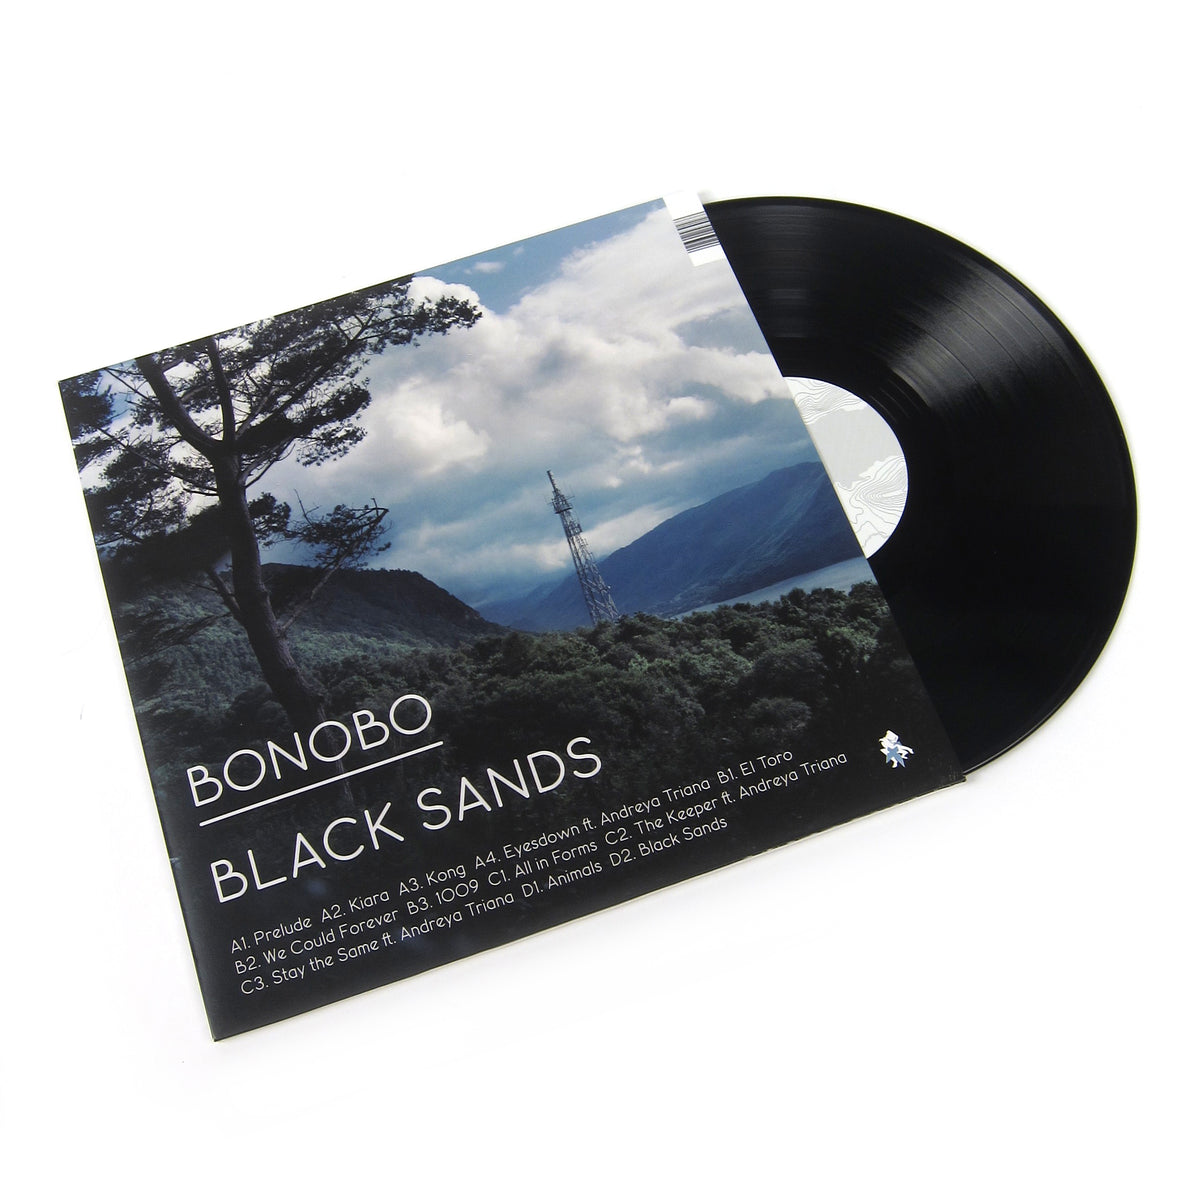 Bonobo: Black Sands (Free MP3) Vinyl 2LP